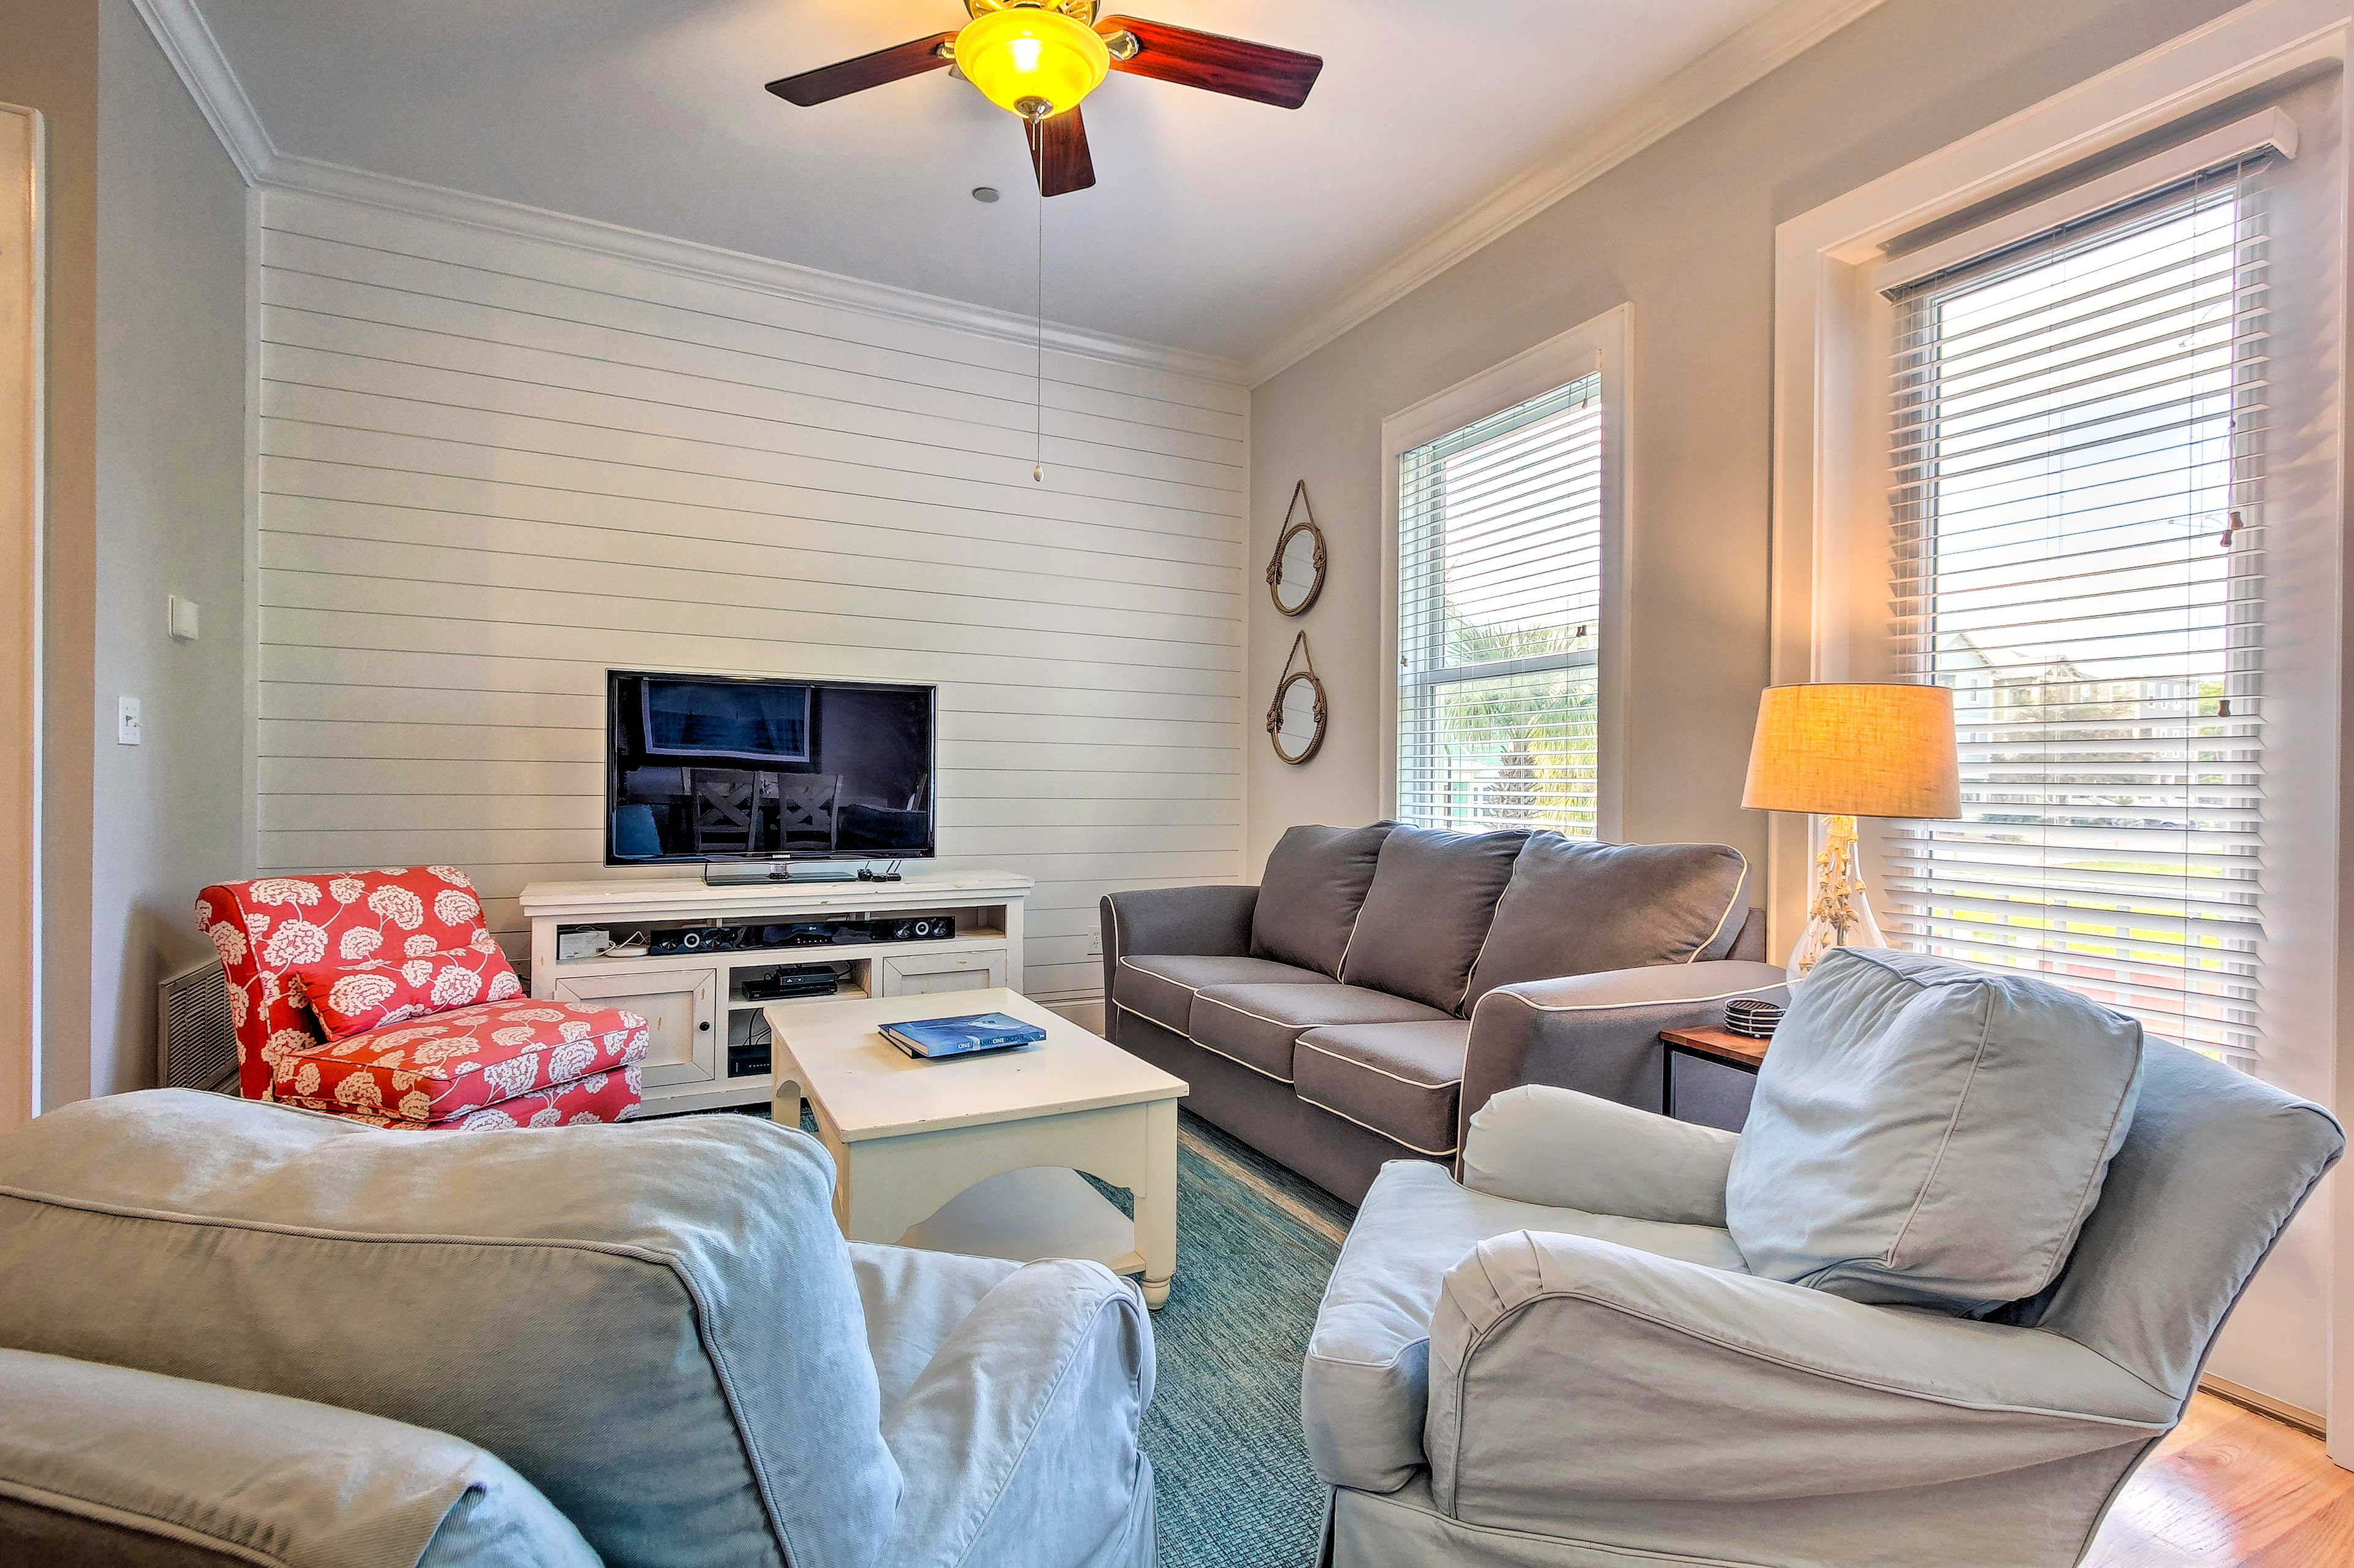 The living space features a flat-screen Smart TV.